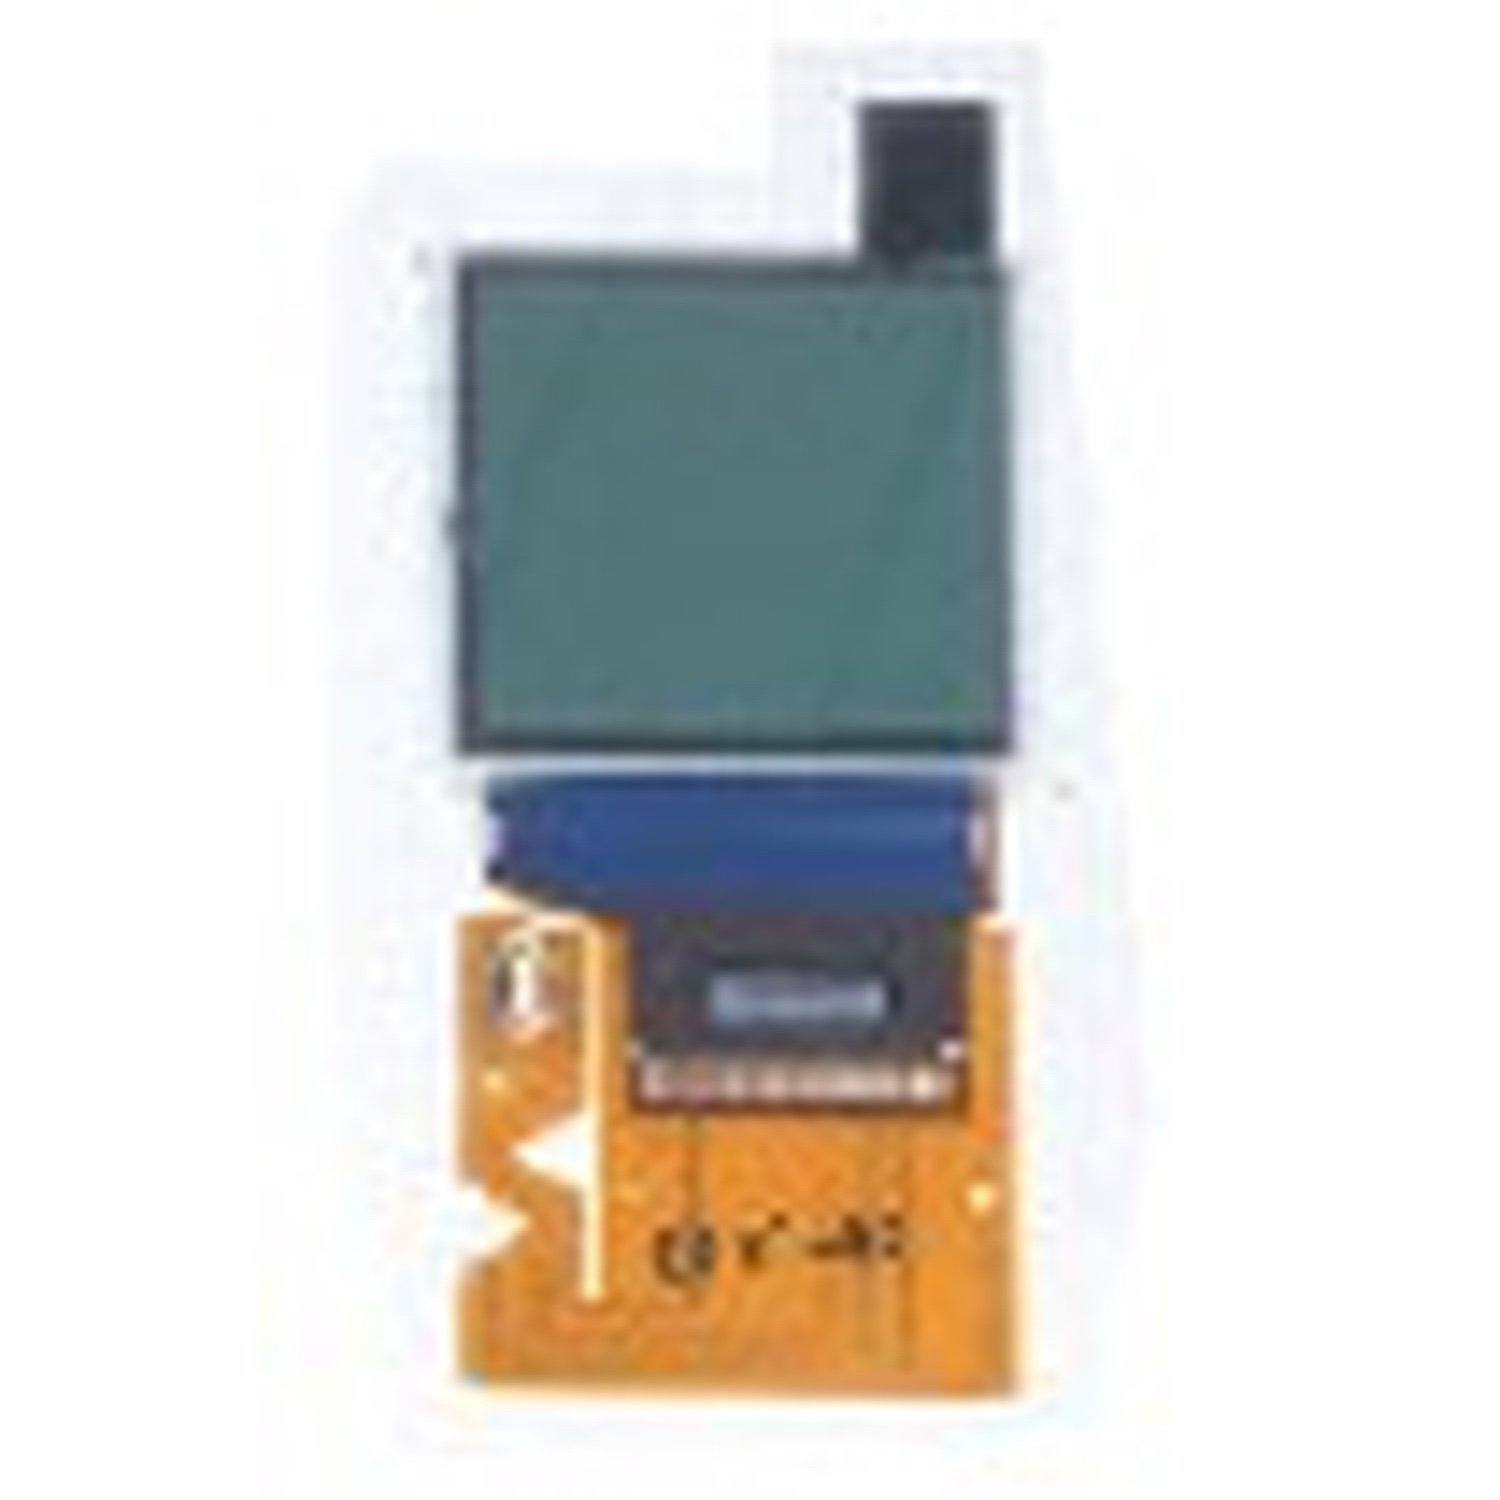 Фото - Philips Xenium LCD display with flex and plug lcd monitor samsung a100 with cord flex